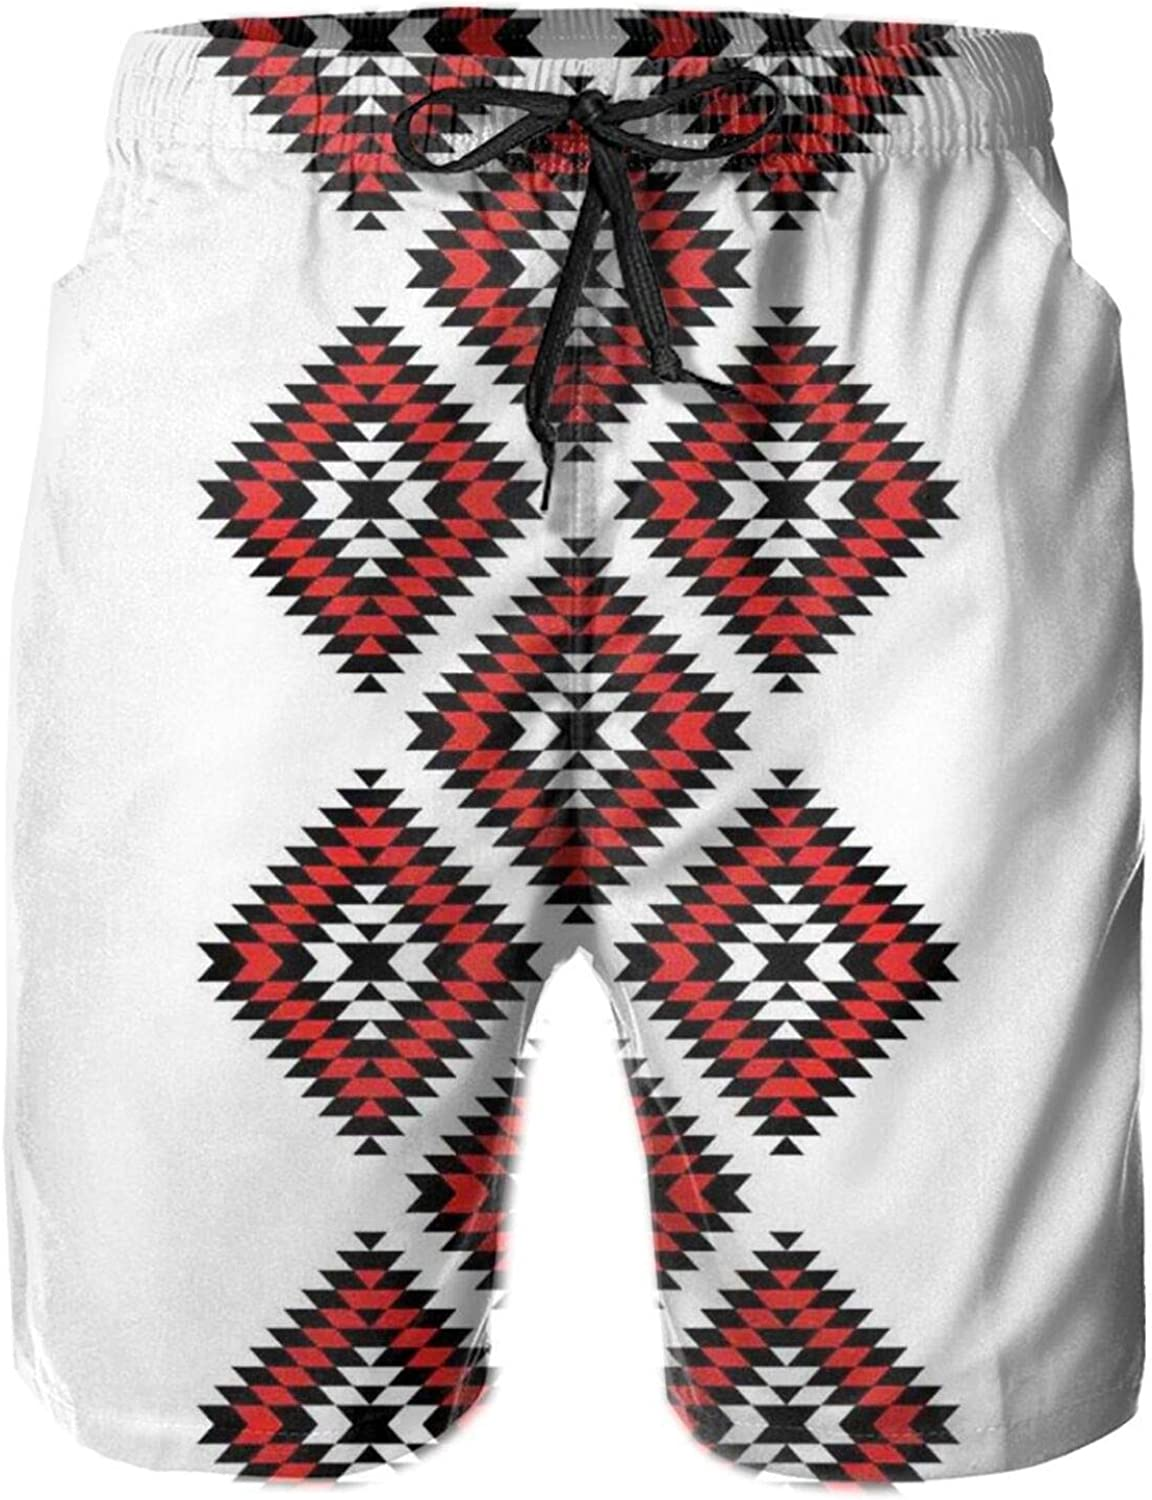 Native Design American Style Zig Zag Aztec Motifs with Ornaments Image Mens Swim Trucks Shorts with Mesh Lining,M